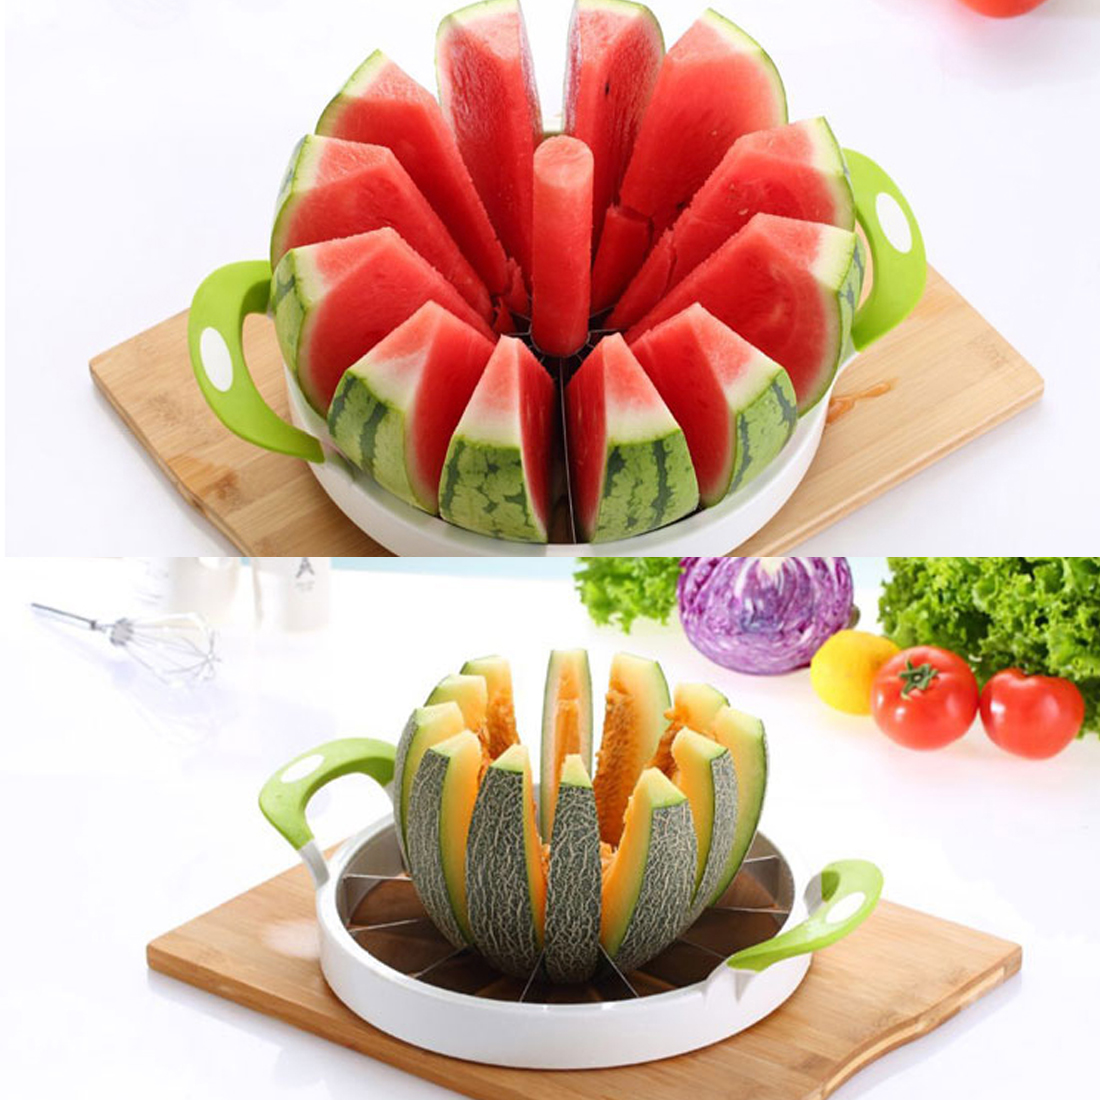 Useful Stainless steel Creative Watermelon Slicer Melon Cutter Knife Fruit Cutting Slicer White and Green Practical Kitchen Tool